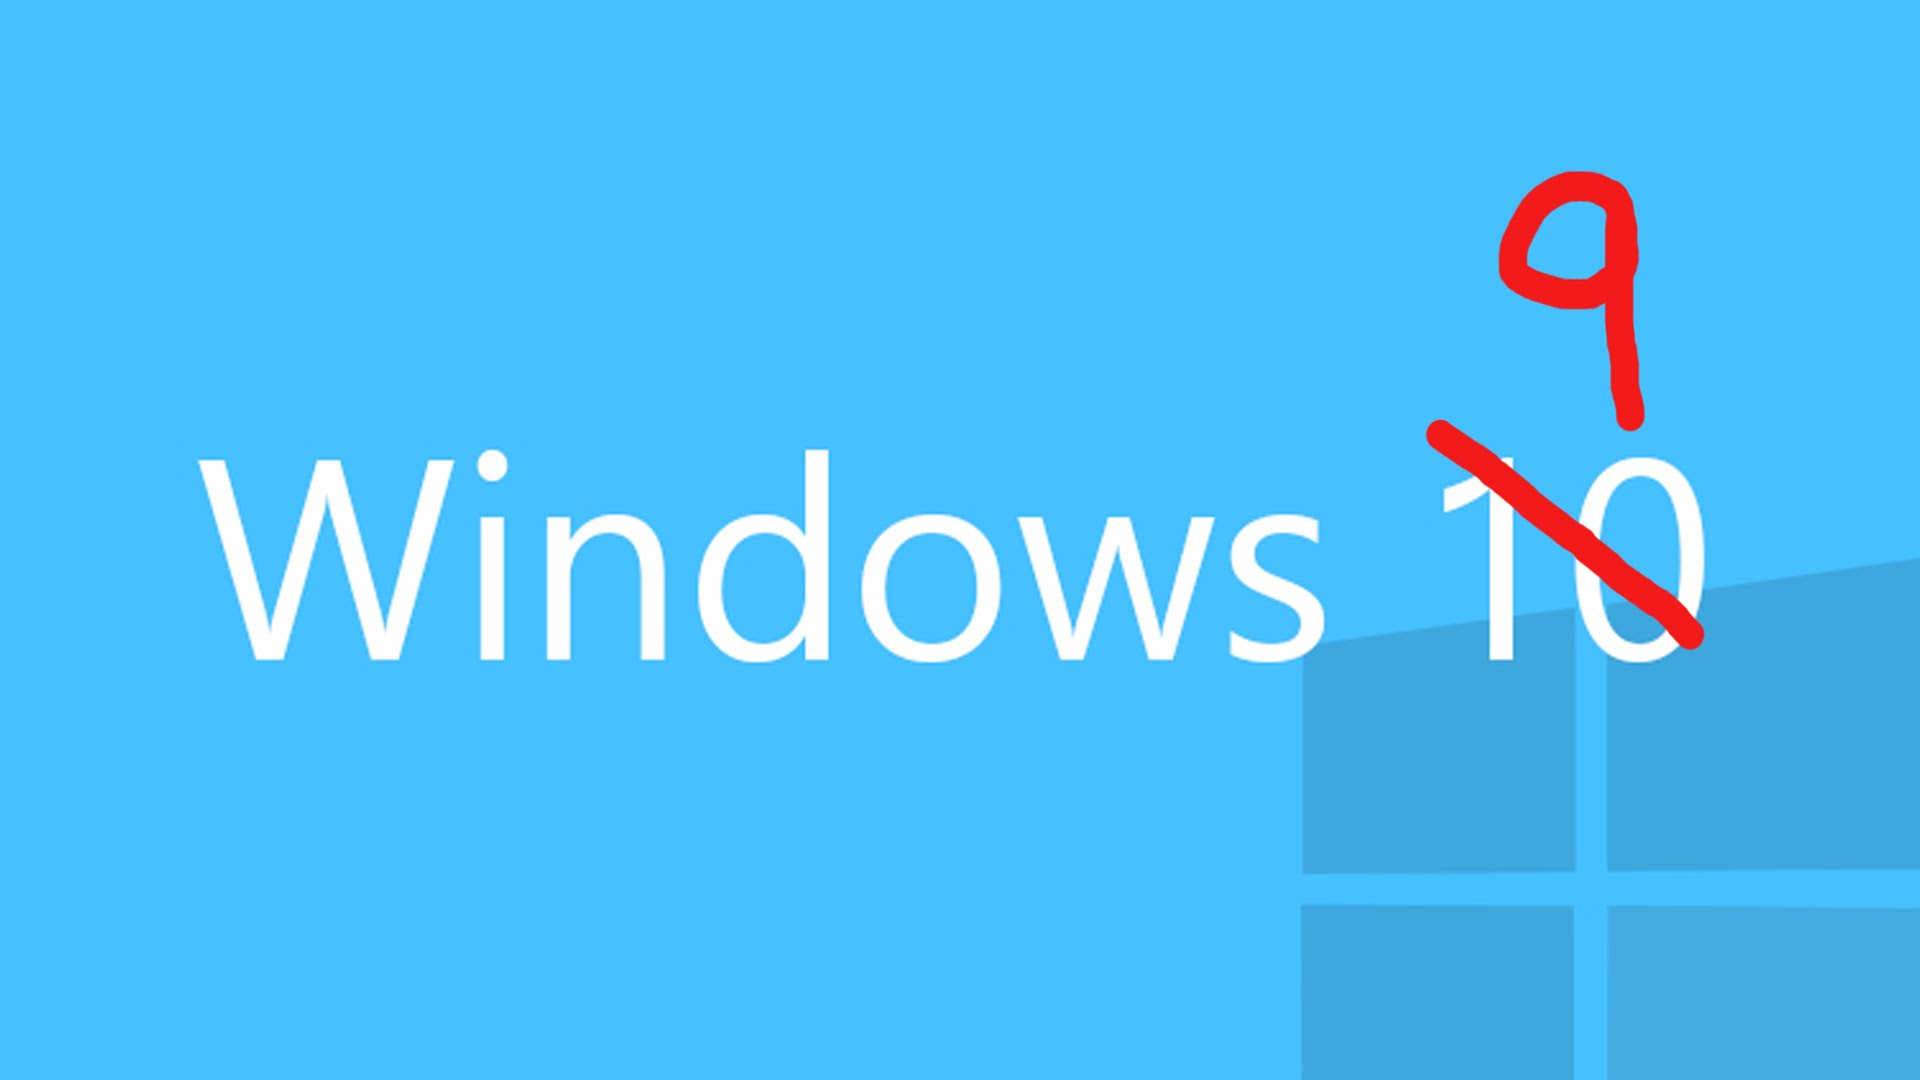 Windows 9 Pics, Technology Collection